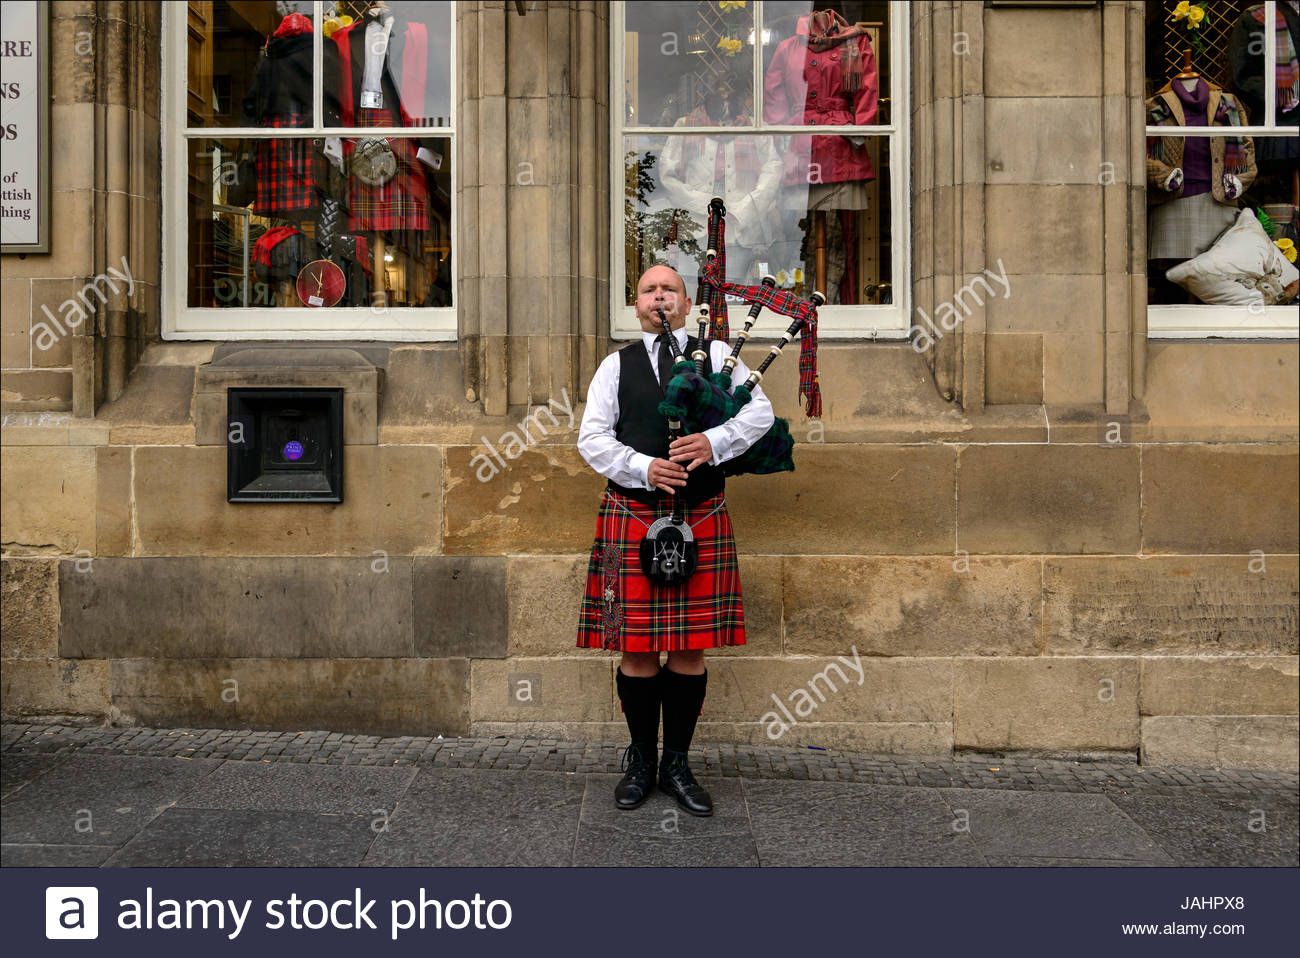 A Scottish bagpiper in traditional kilt entertains passersby, many of whom are tourists, on the Royal Mile in Edinburgh. - Stock Image